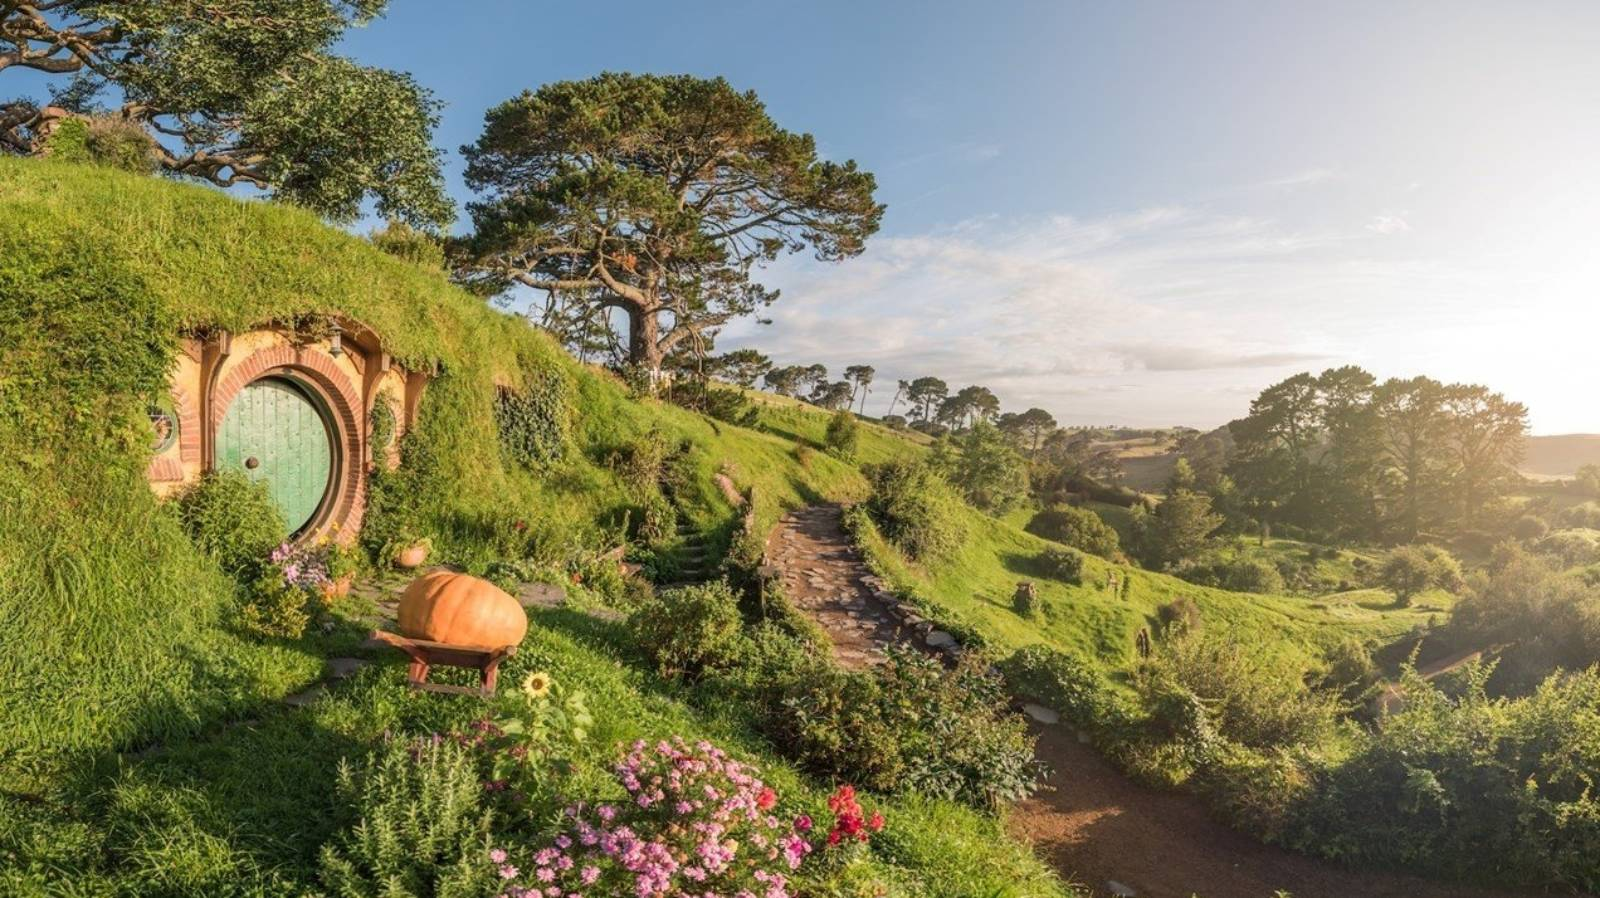 Three movie locations in Aotearoa to visit